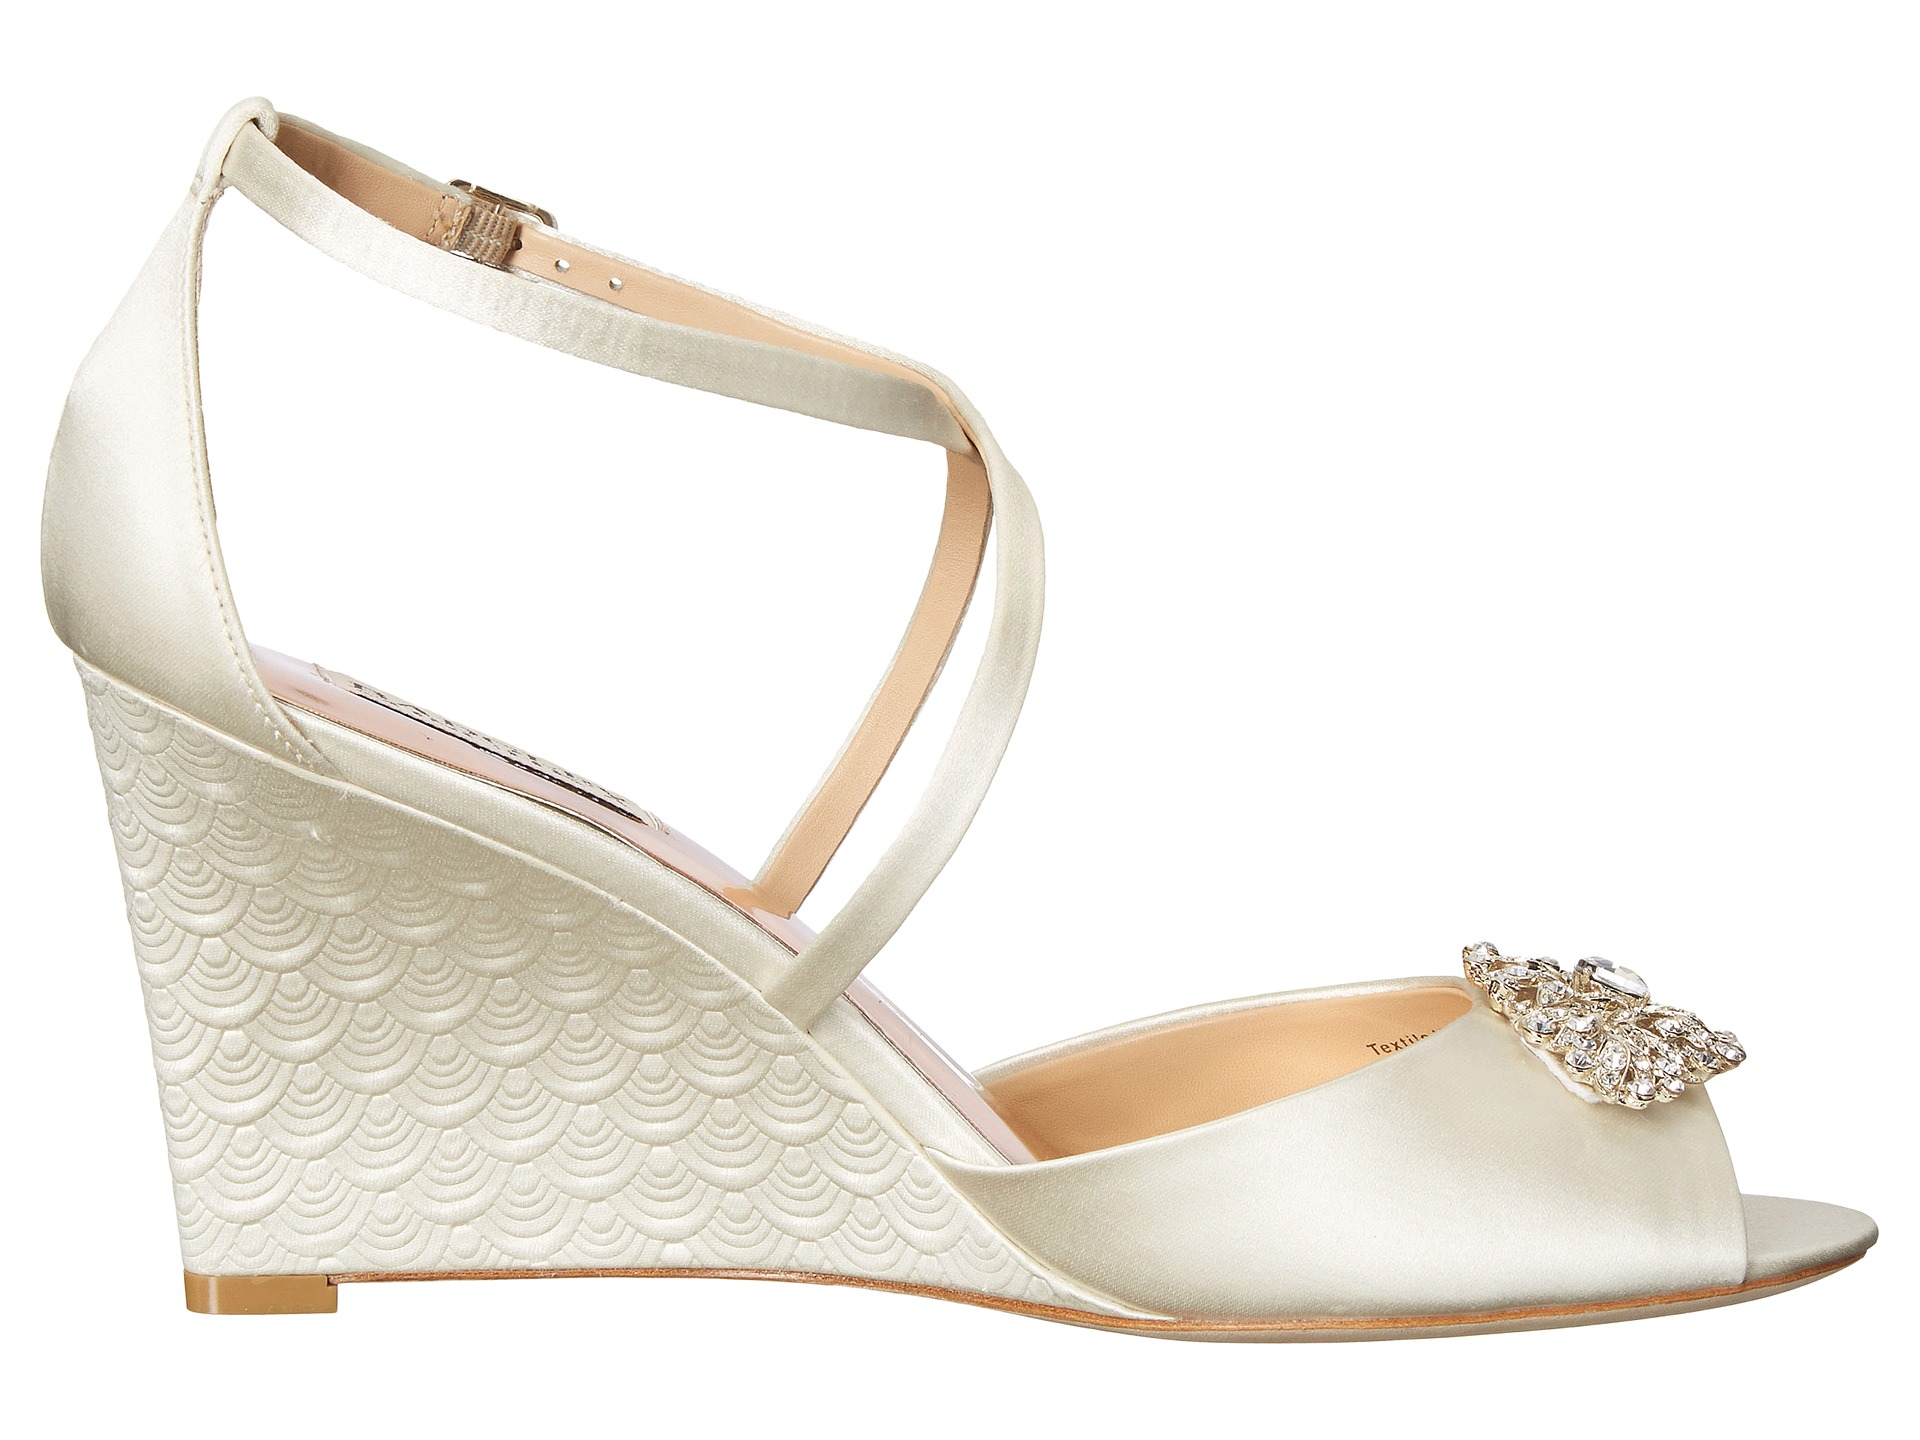 BADGLEY MISCHKA ABIGAIL IVORY SILK